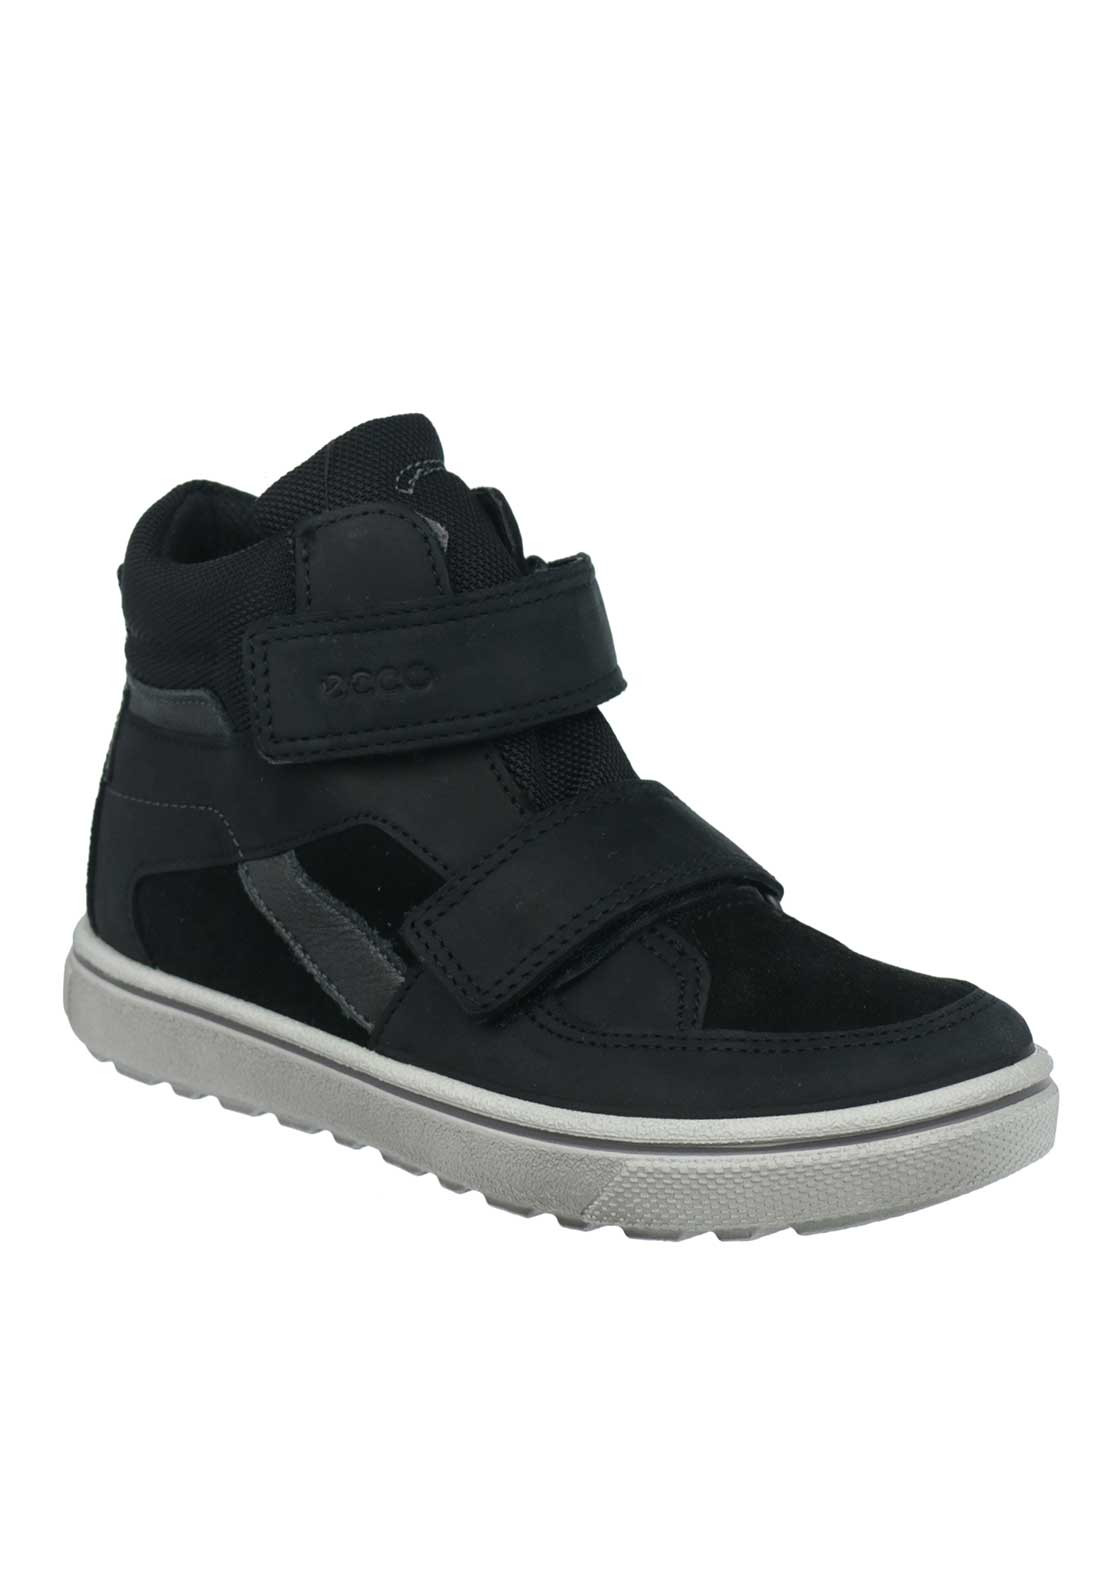 Ecco Boys Leather Mix Velcro Strap Boots, Black